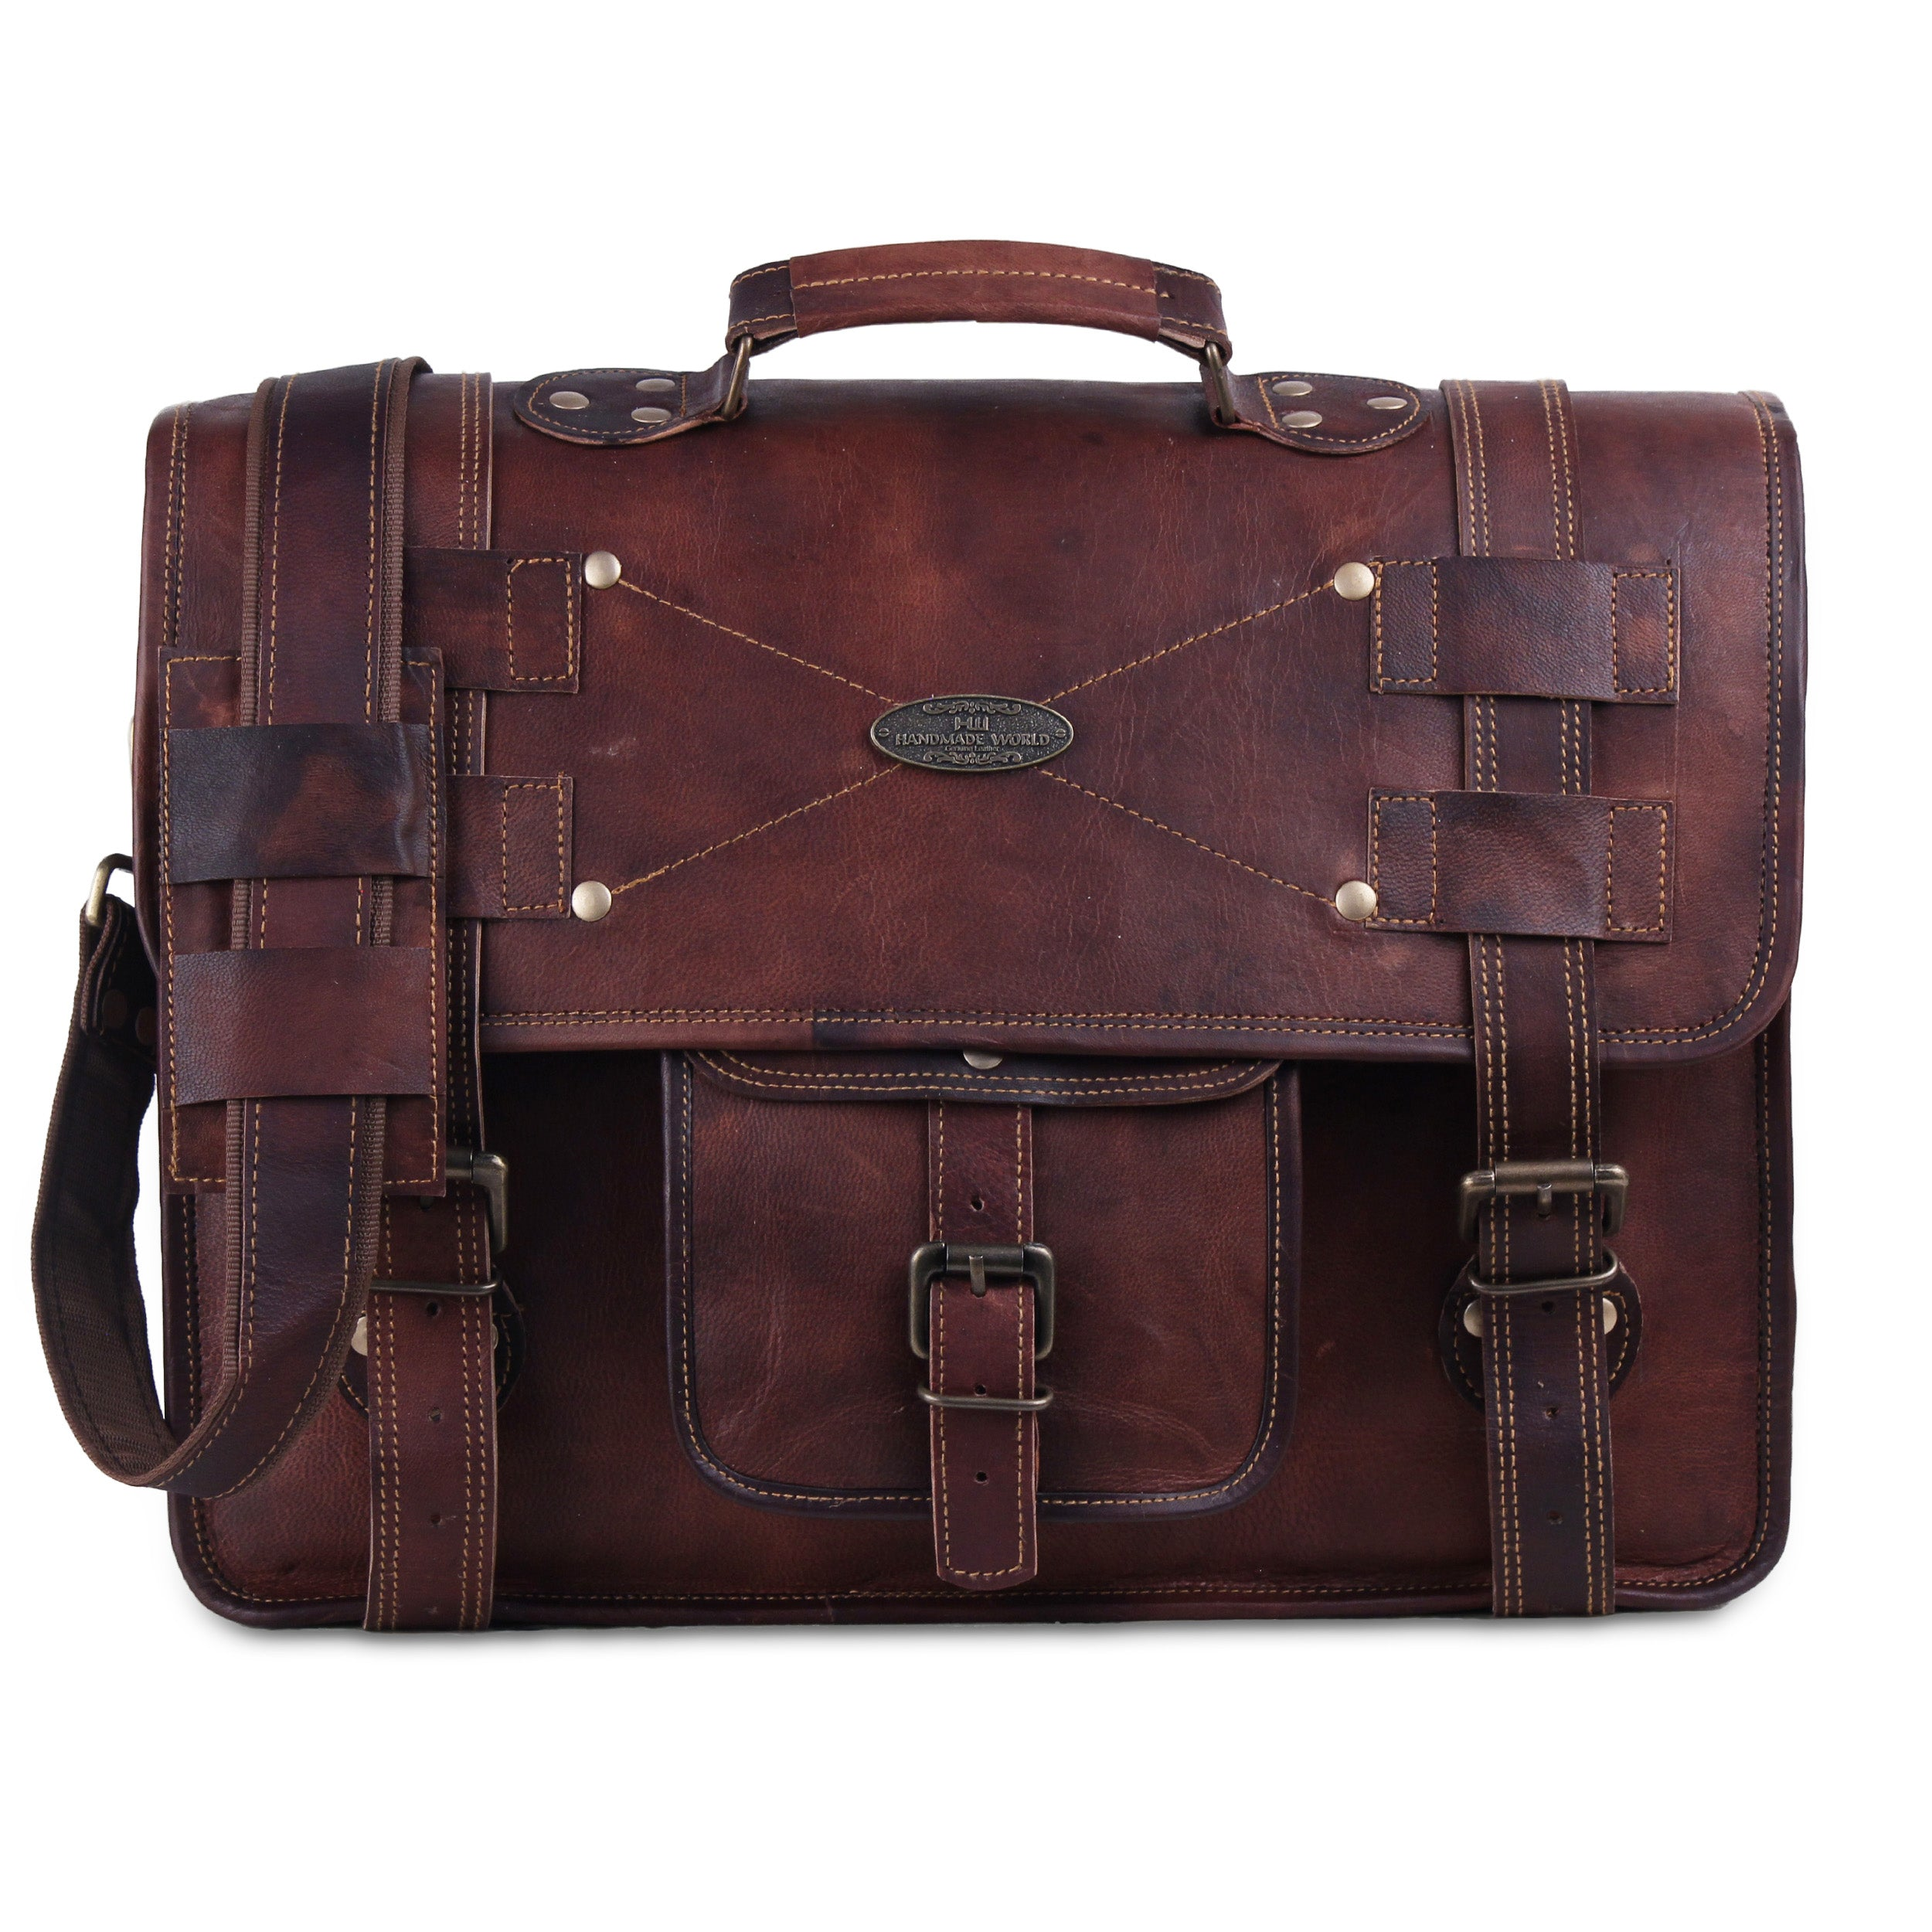 Large Leather Messenger Bag with Top handle for Office work